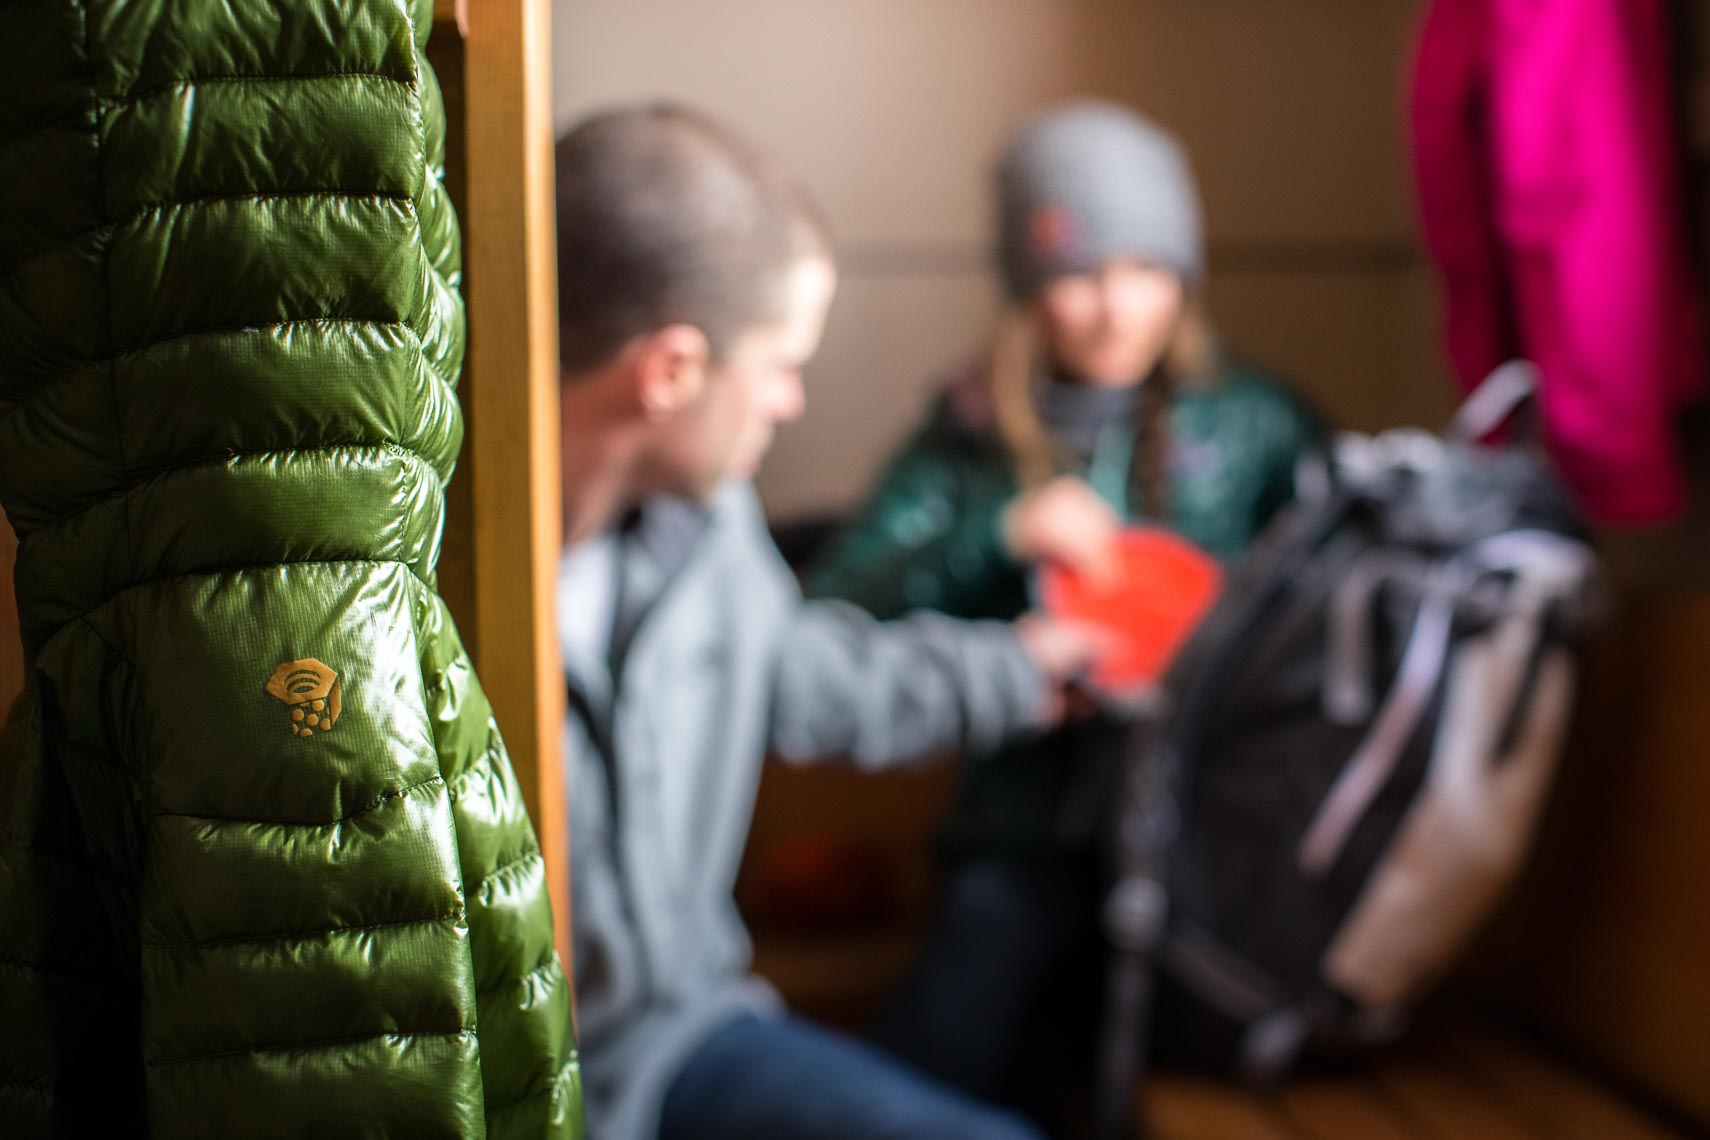 Mountain hardware winter jacket imagery by apparel and product photographer